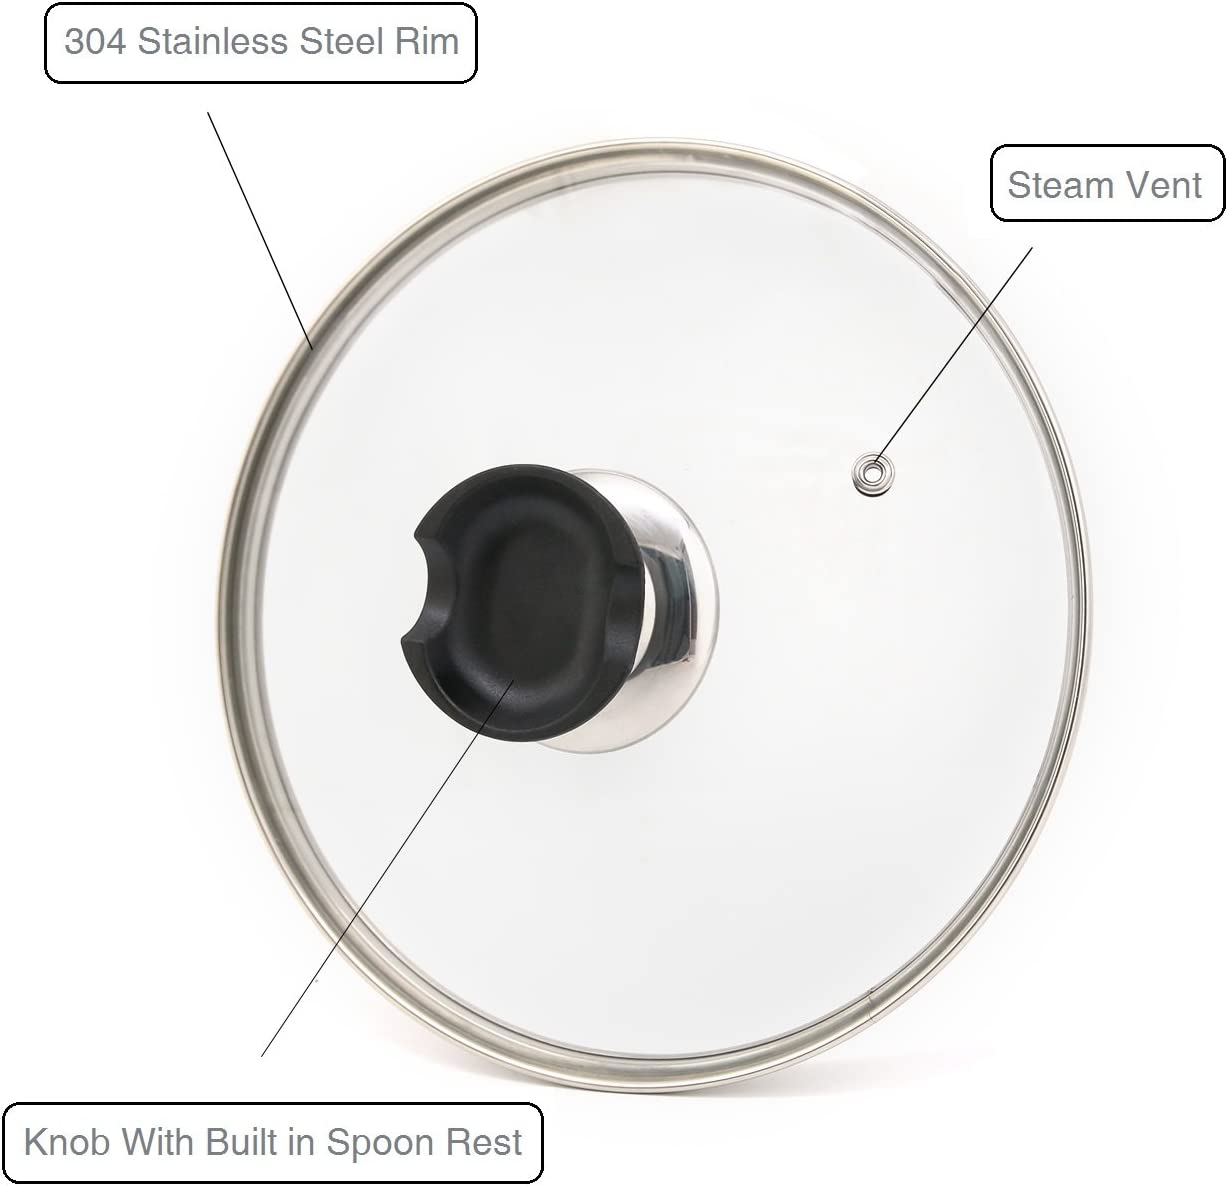 9 inch Tempered Glass Lid Accessory for Instant Pot 5 and 6 Quart Pressure Cooker Universal Pan Pot Clear Cookware Lid//Cover with Spoon Rest//Holder Knob Handle Design Steam Vent and Thermometer Slot Hoople